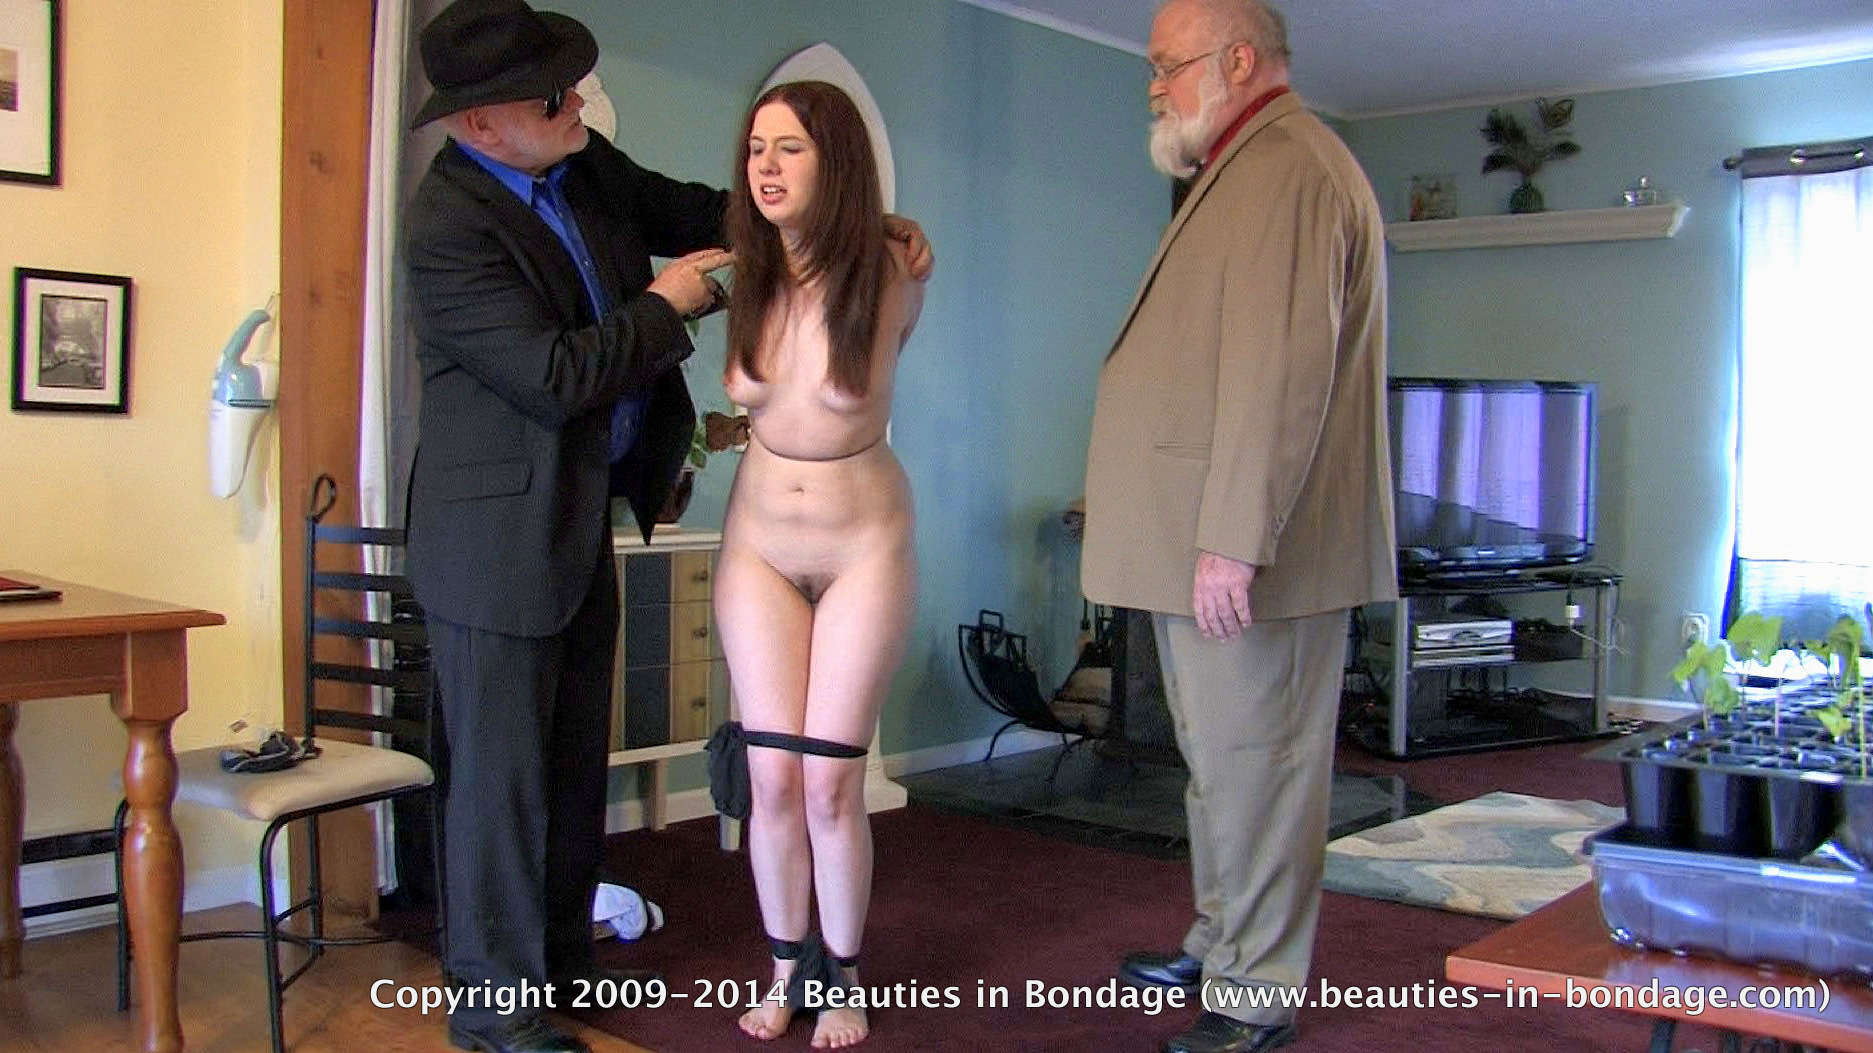 pantyhose stripped her bound her